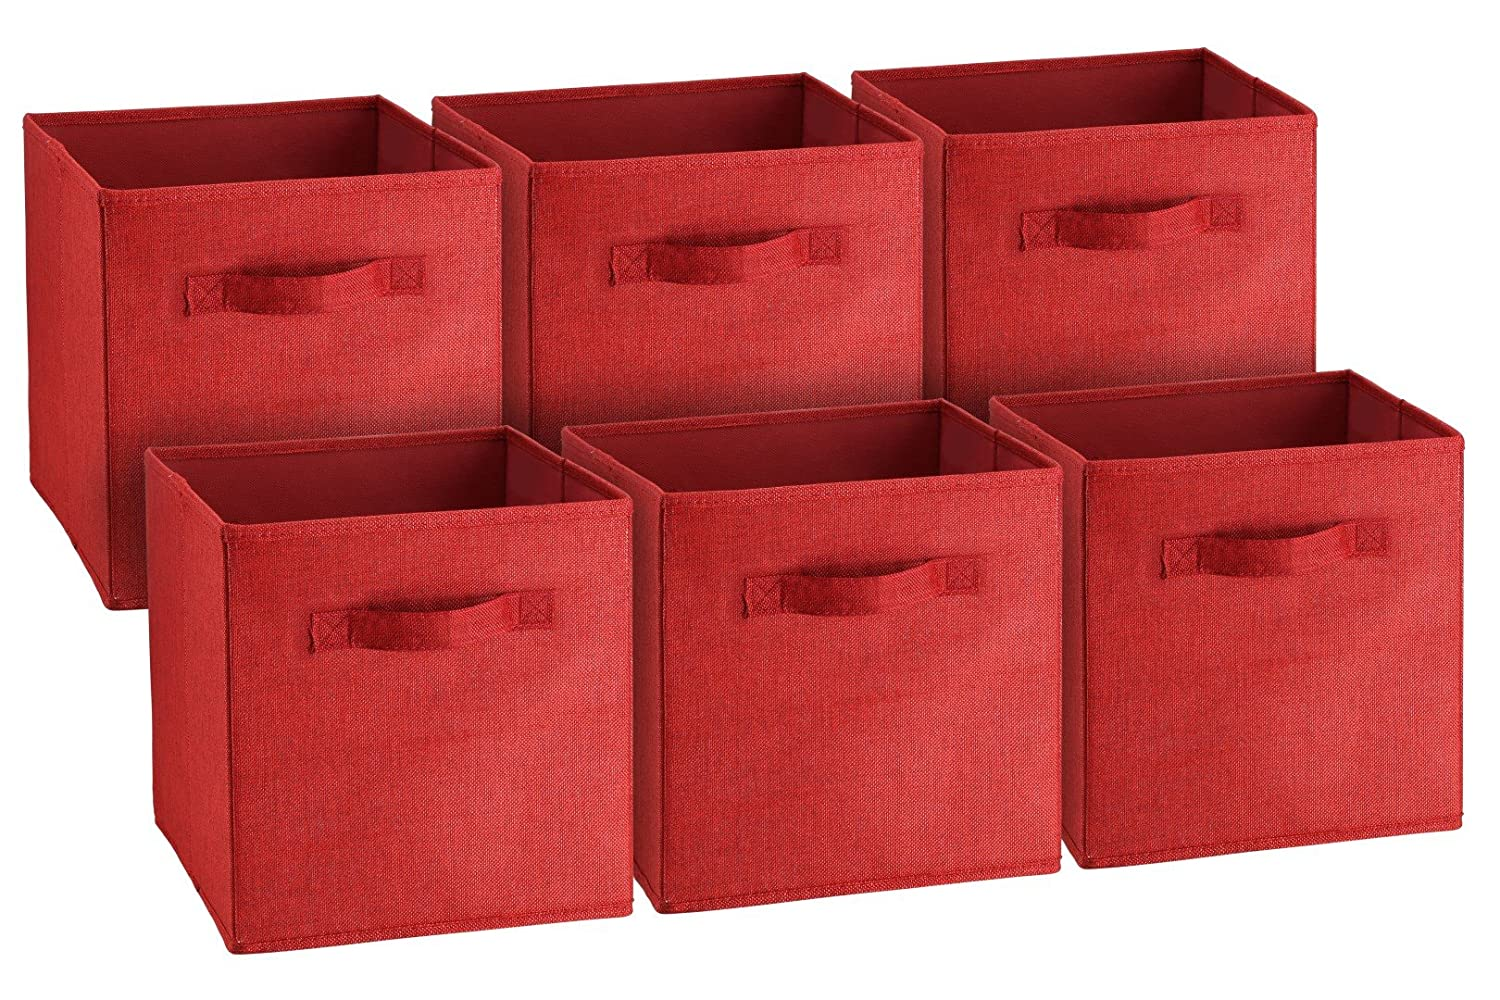 Best at a Glance Fabric Foldable Storage Cubes, Collapsible Square Organizing Bins, Folding Nursery Drawer Basket Cubicles, Cloth / Toy cube cubby Woven containers, 2 Handles, 6 pack (Bright Burgundy) Best-at-a-Glance 603